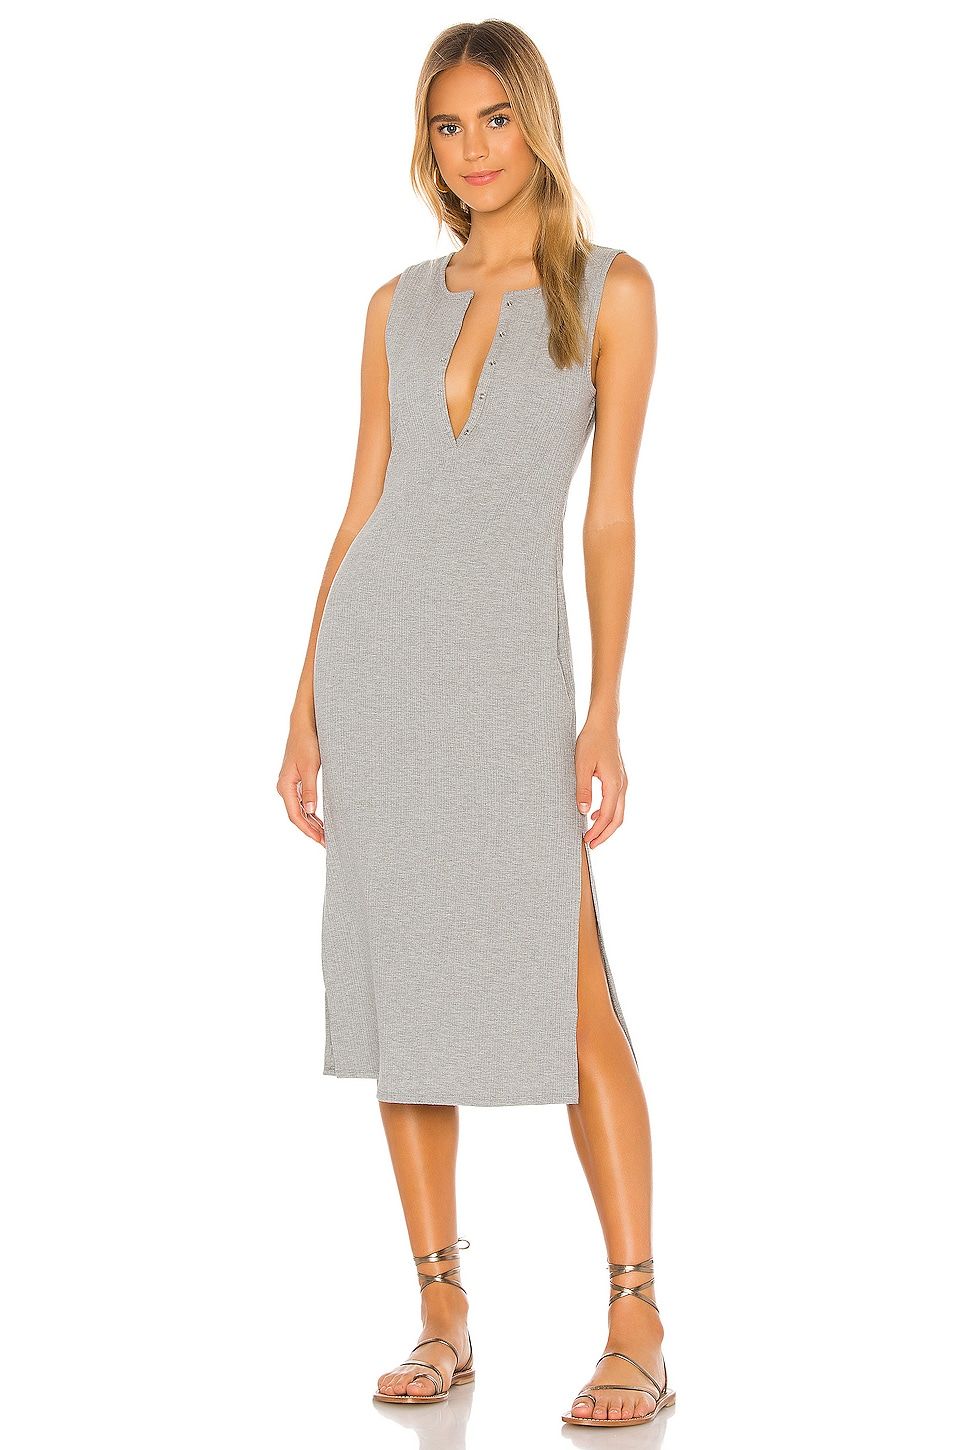 Day Shirt Sleeveless Dress             BCBGeneration                                                                                                       CA$ 105.38 18